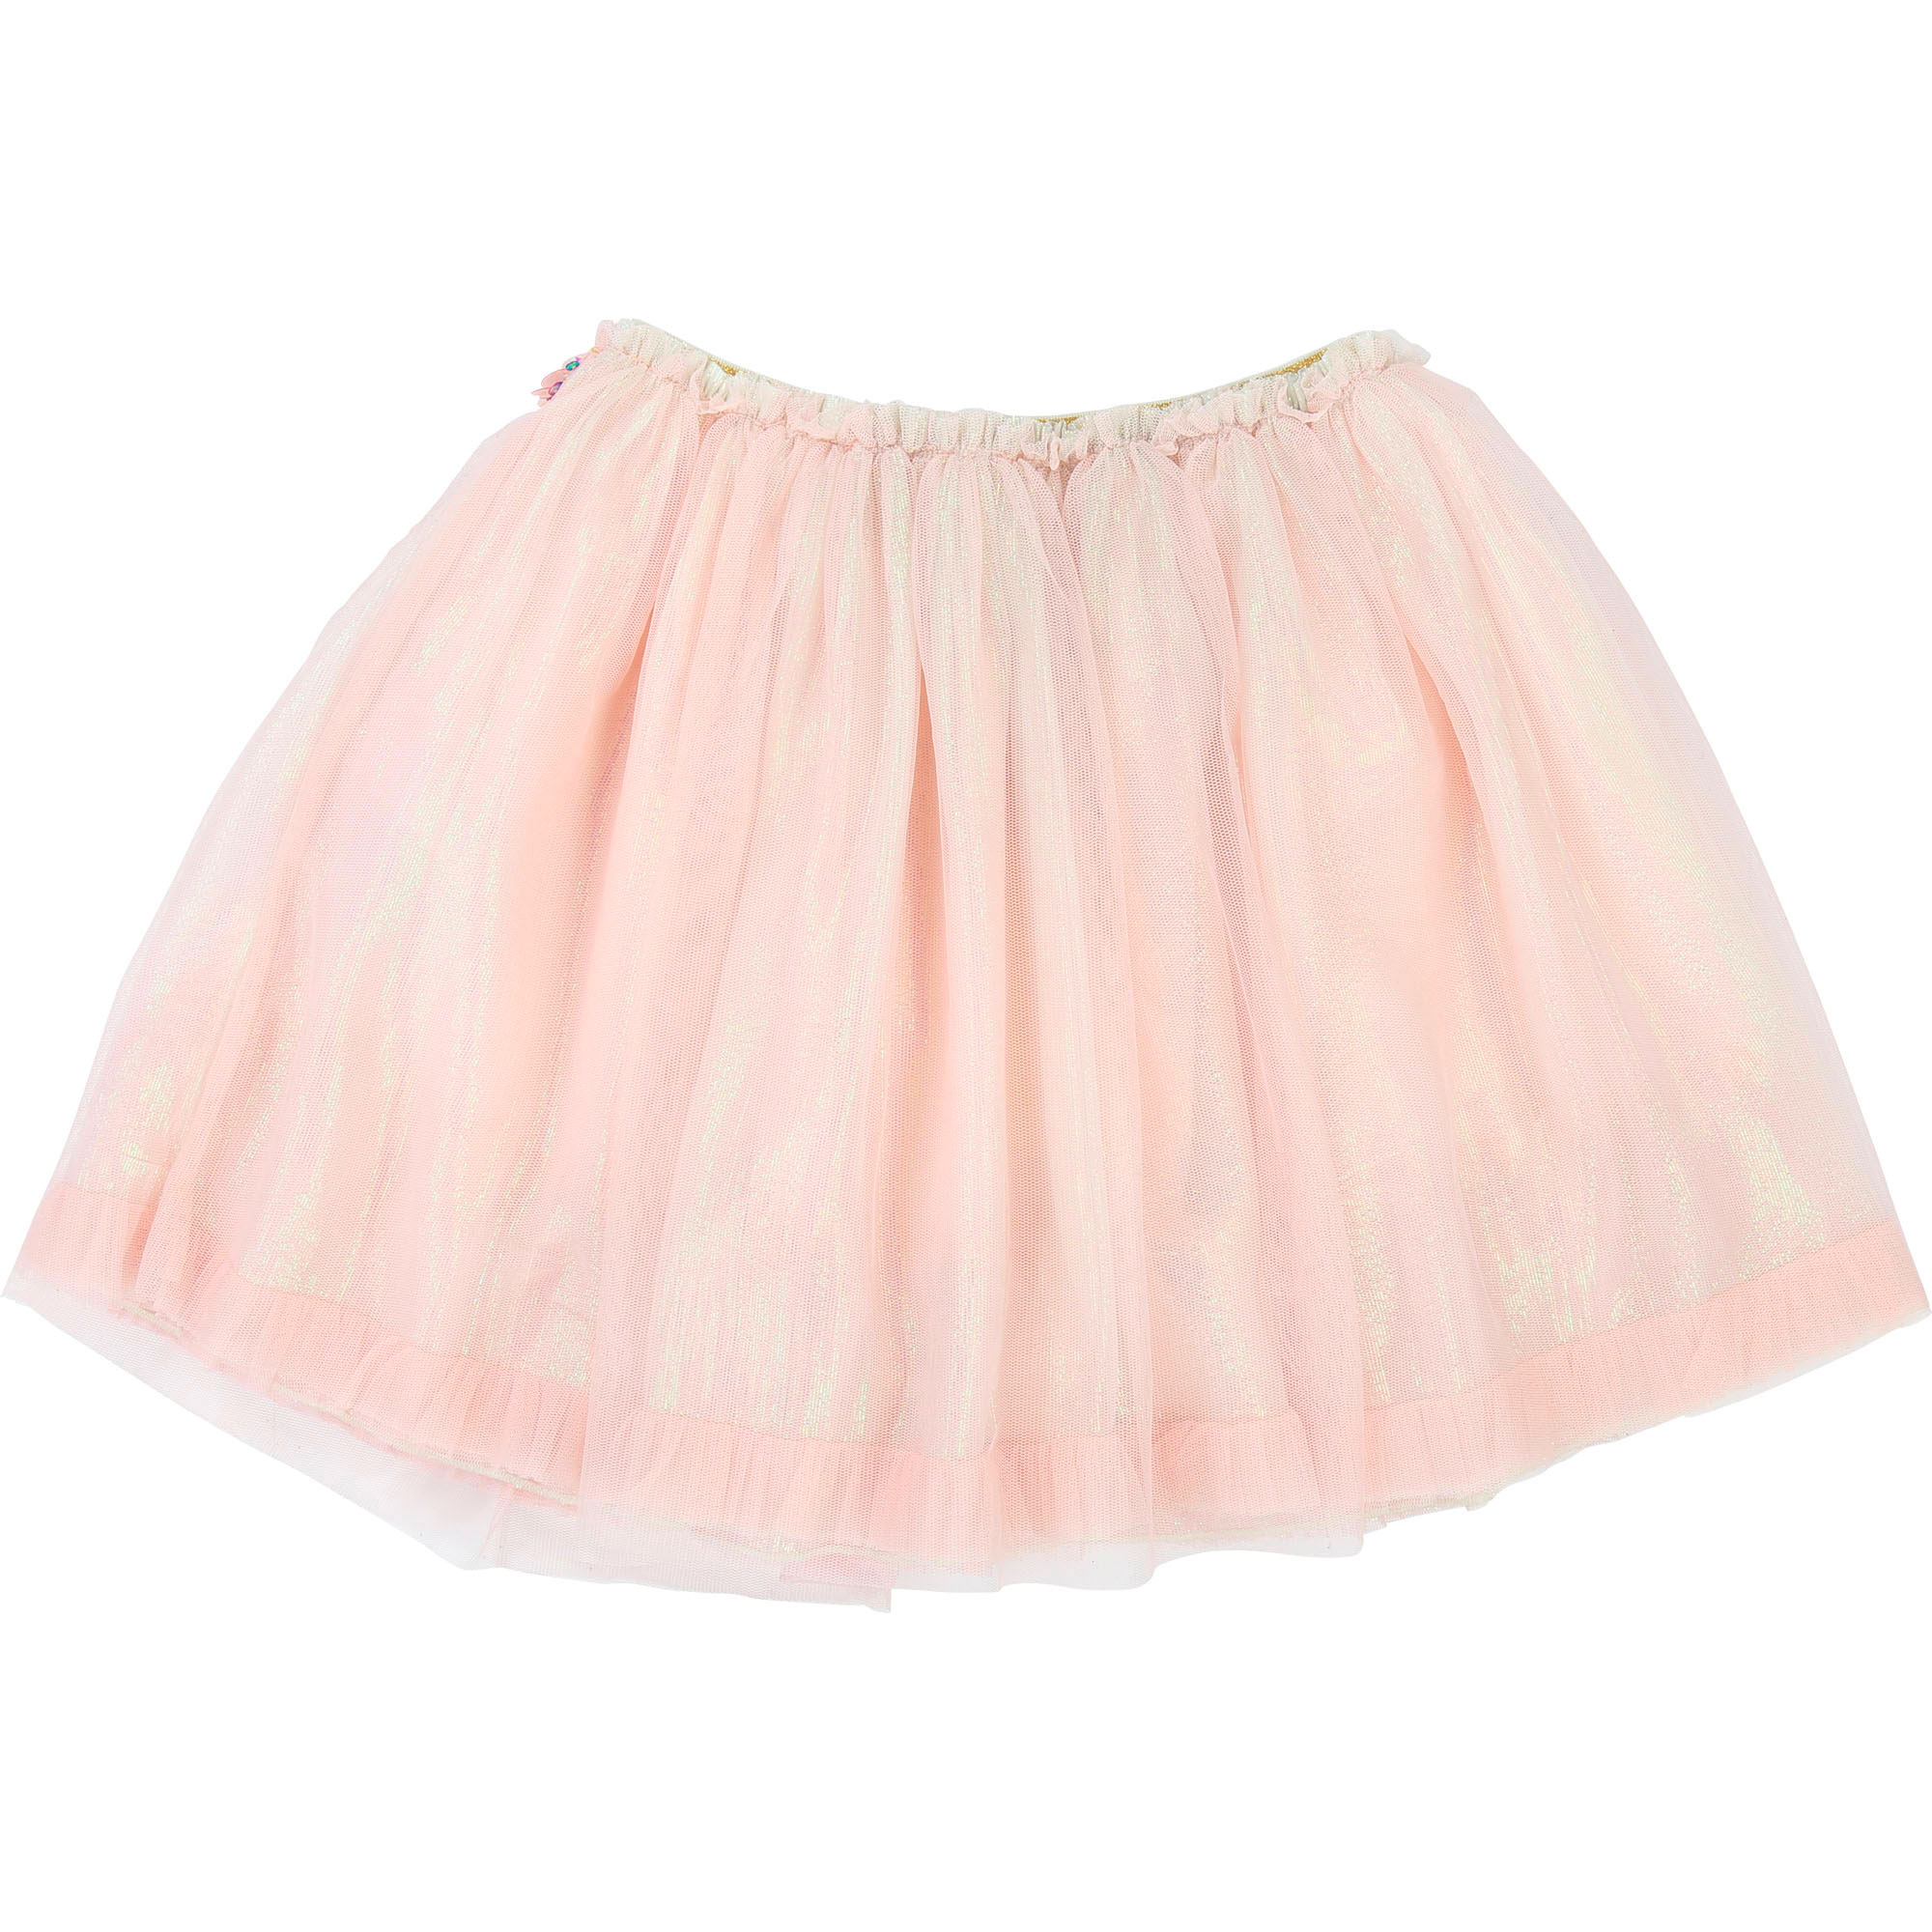 Iridescent tulle petticoat BILLIEBLUSH for GIRL